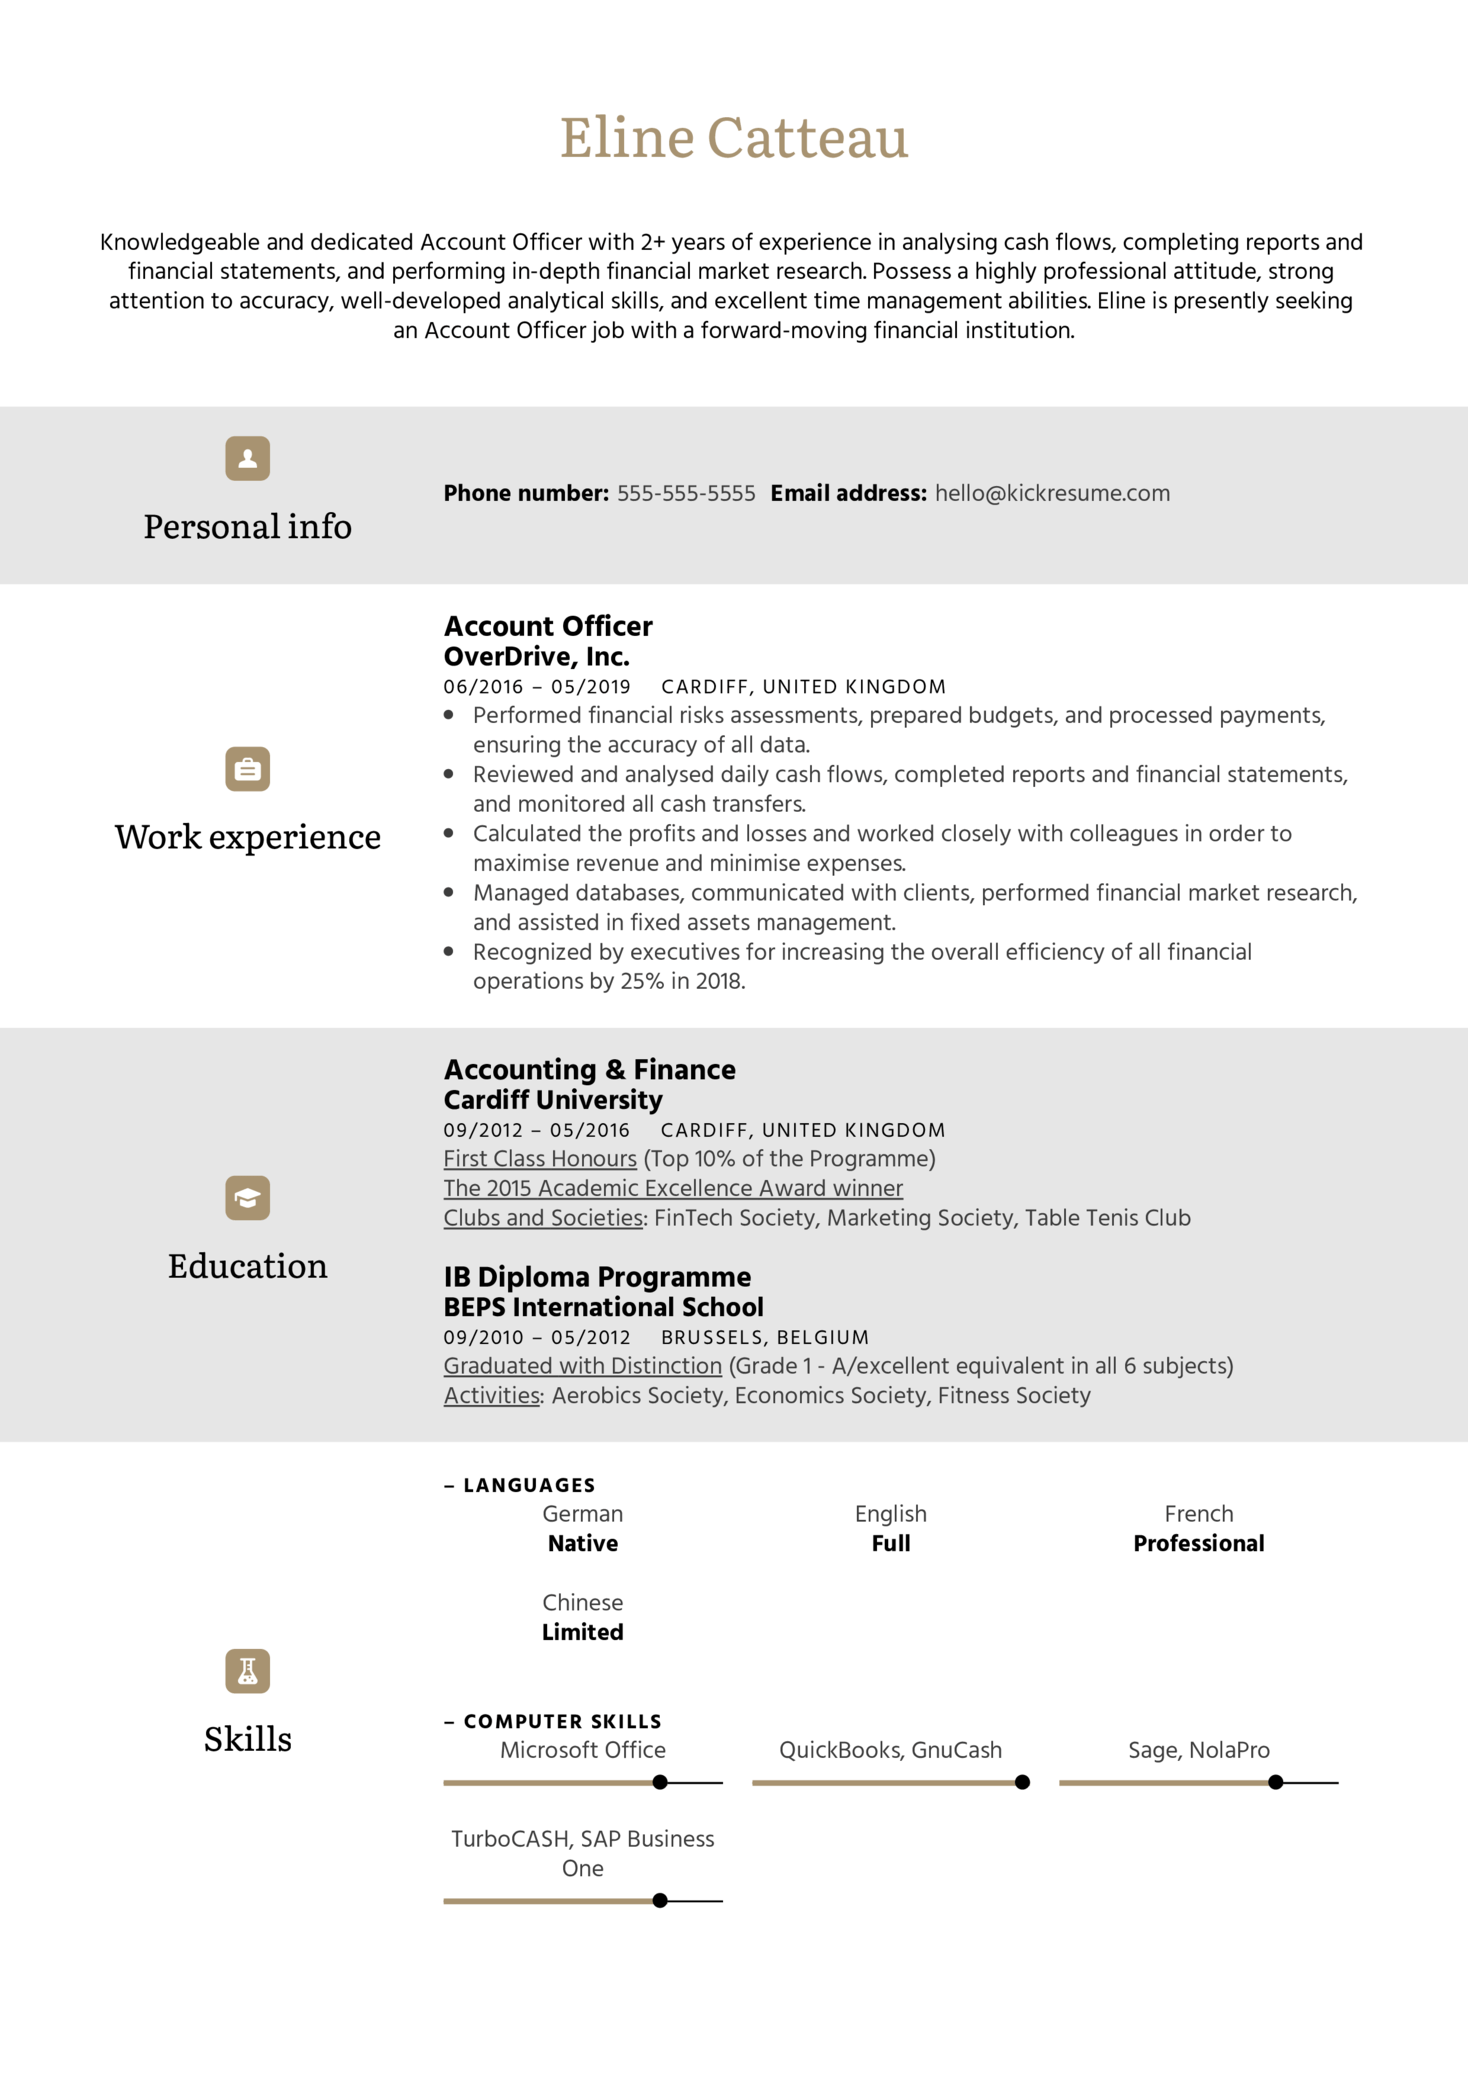 Account Officer Resume Sample (Part 1)